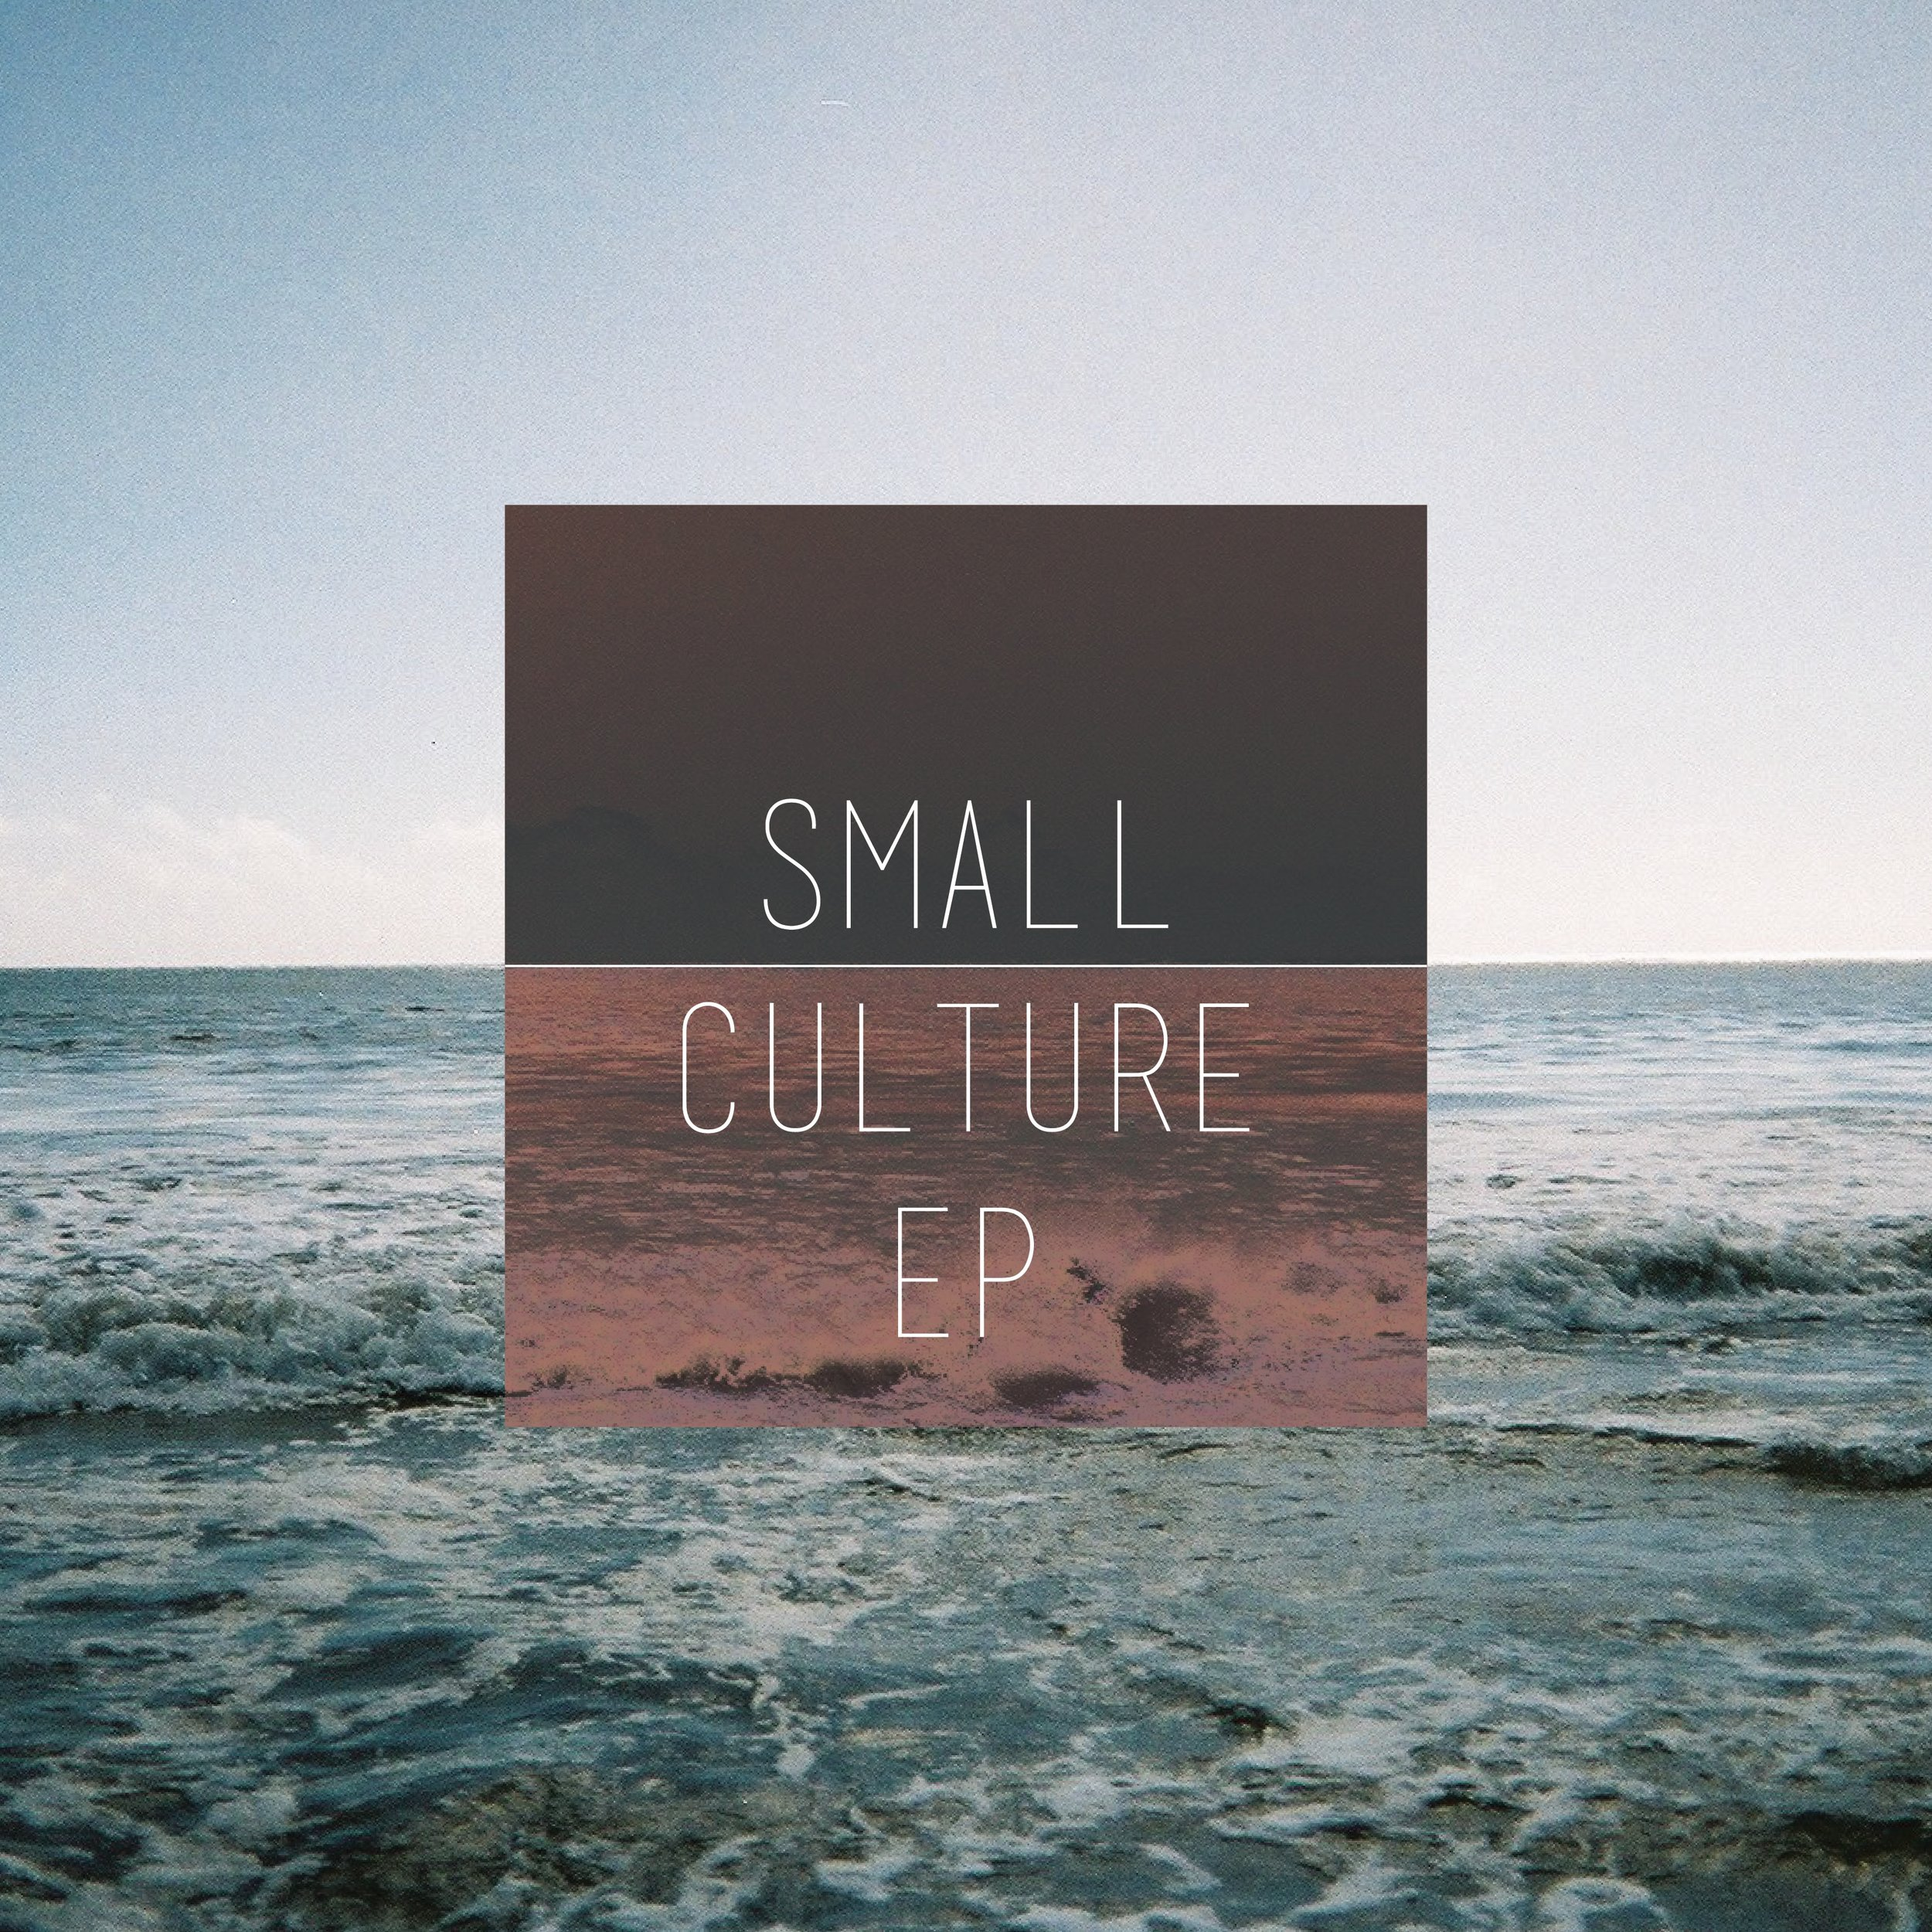 Small Culture - Small Culture EP Album Art .jpg